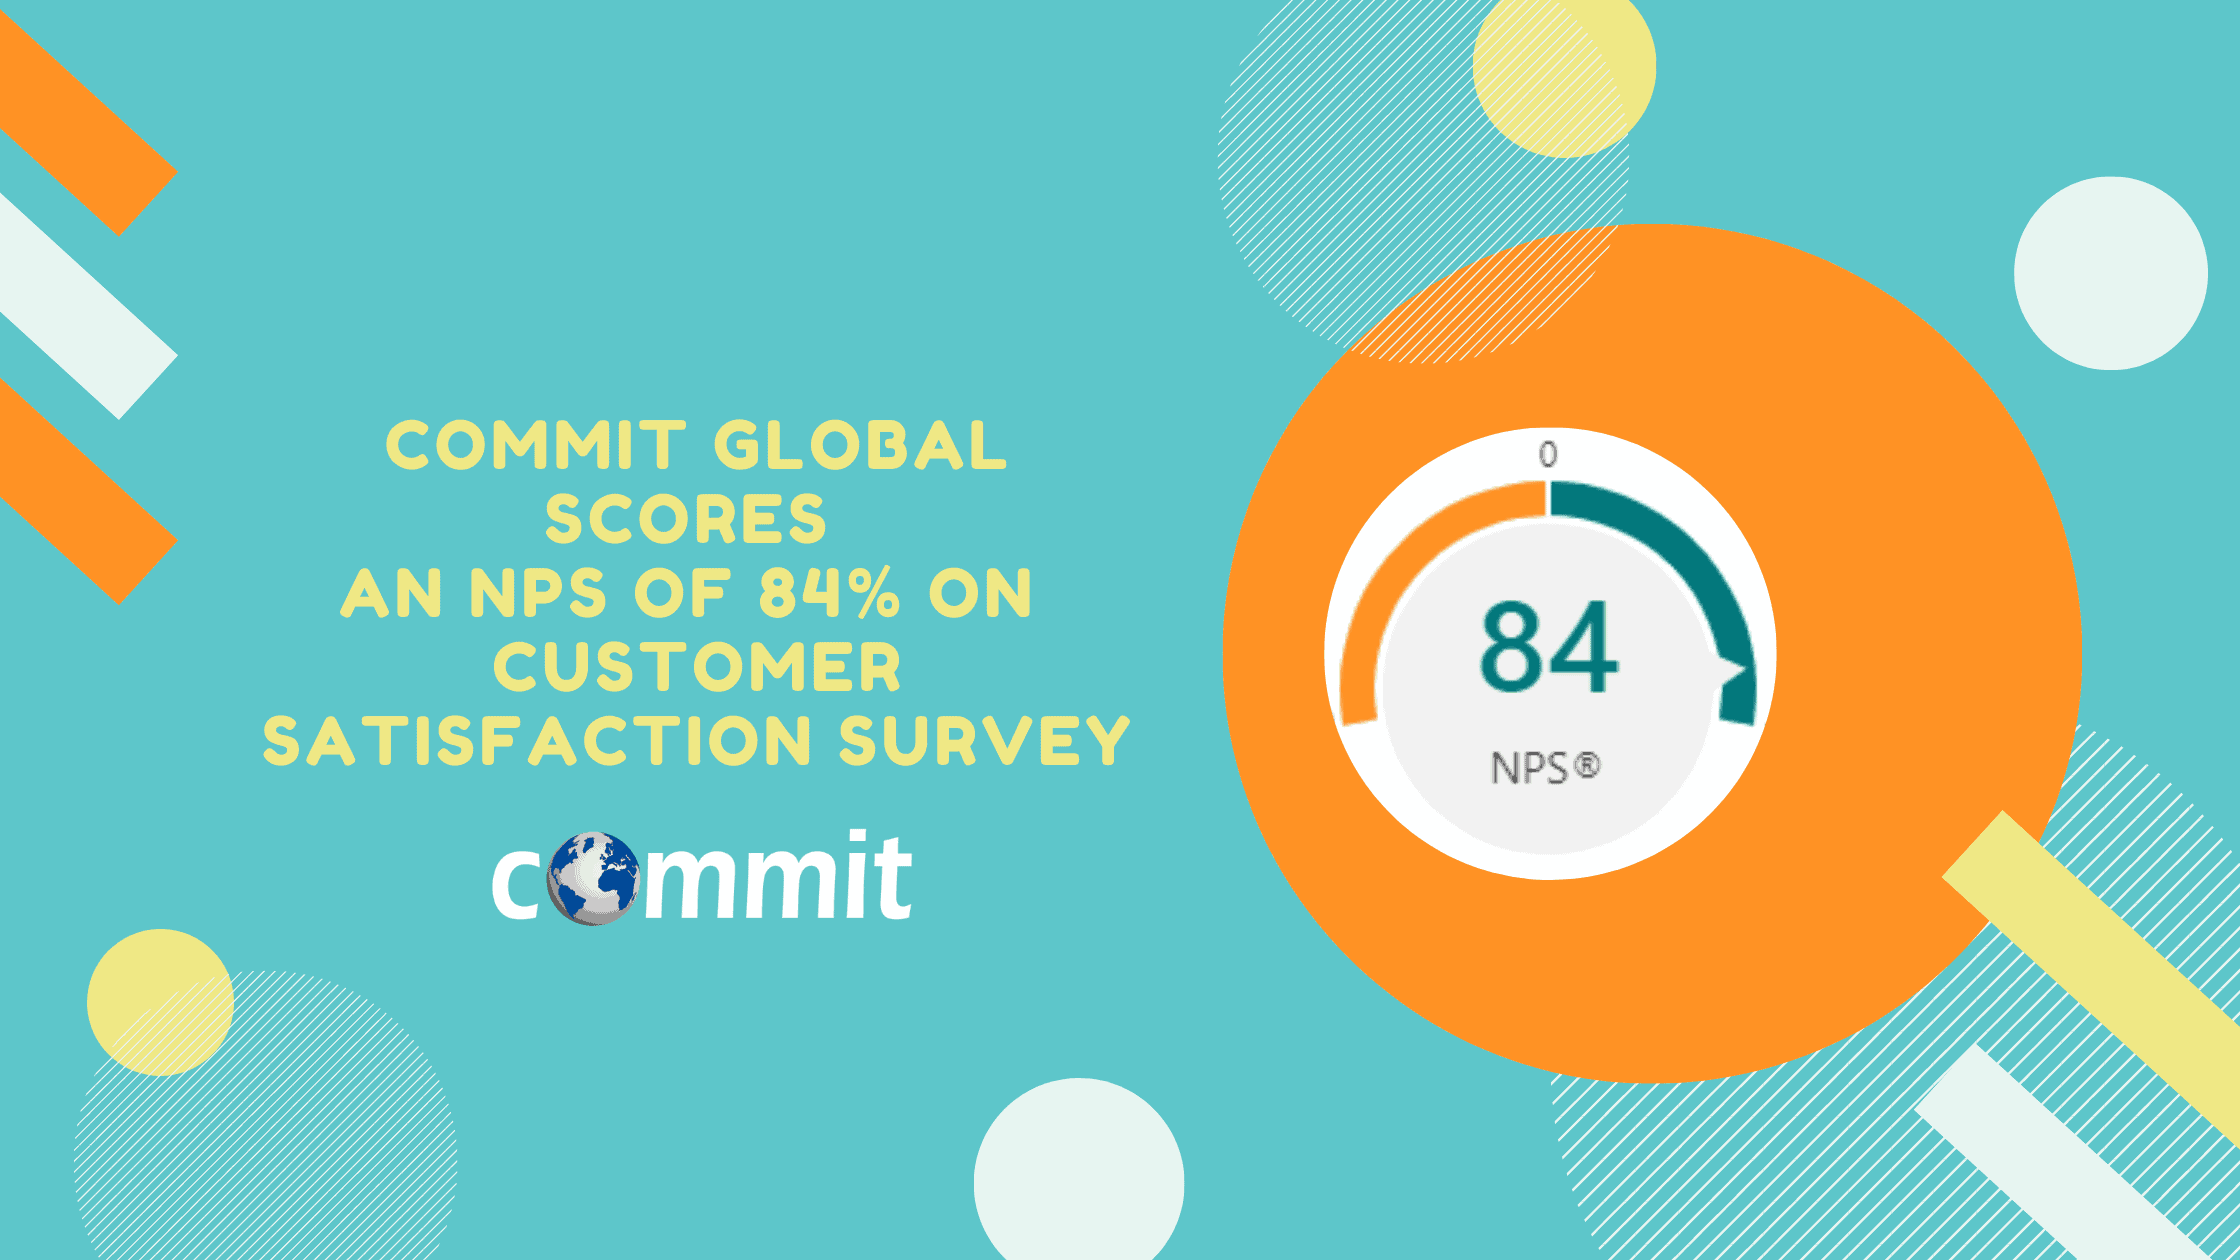 Commit Global Scores an NPS of 84% on Annual Customer Satisfaction Survey